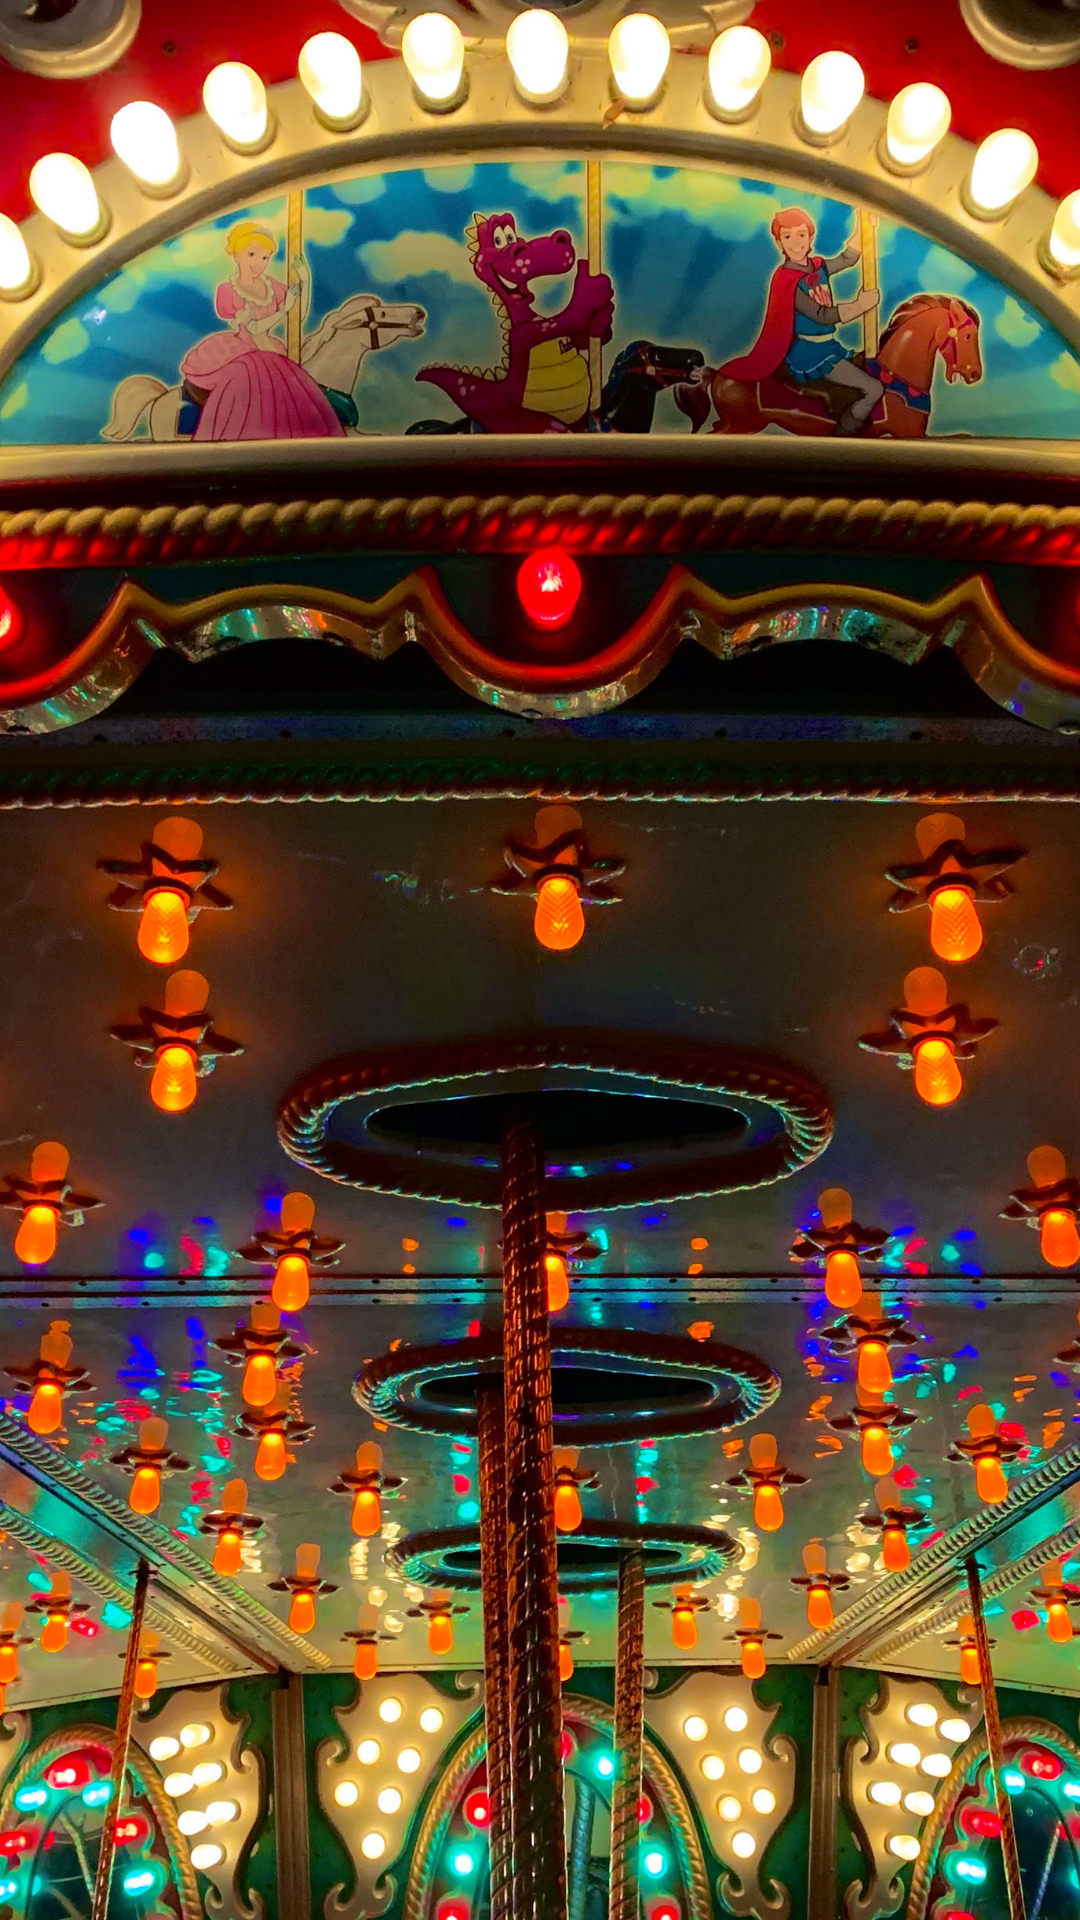 Close-up photo of a merry go round lit up at night